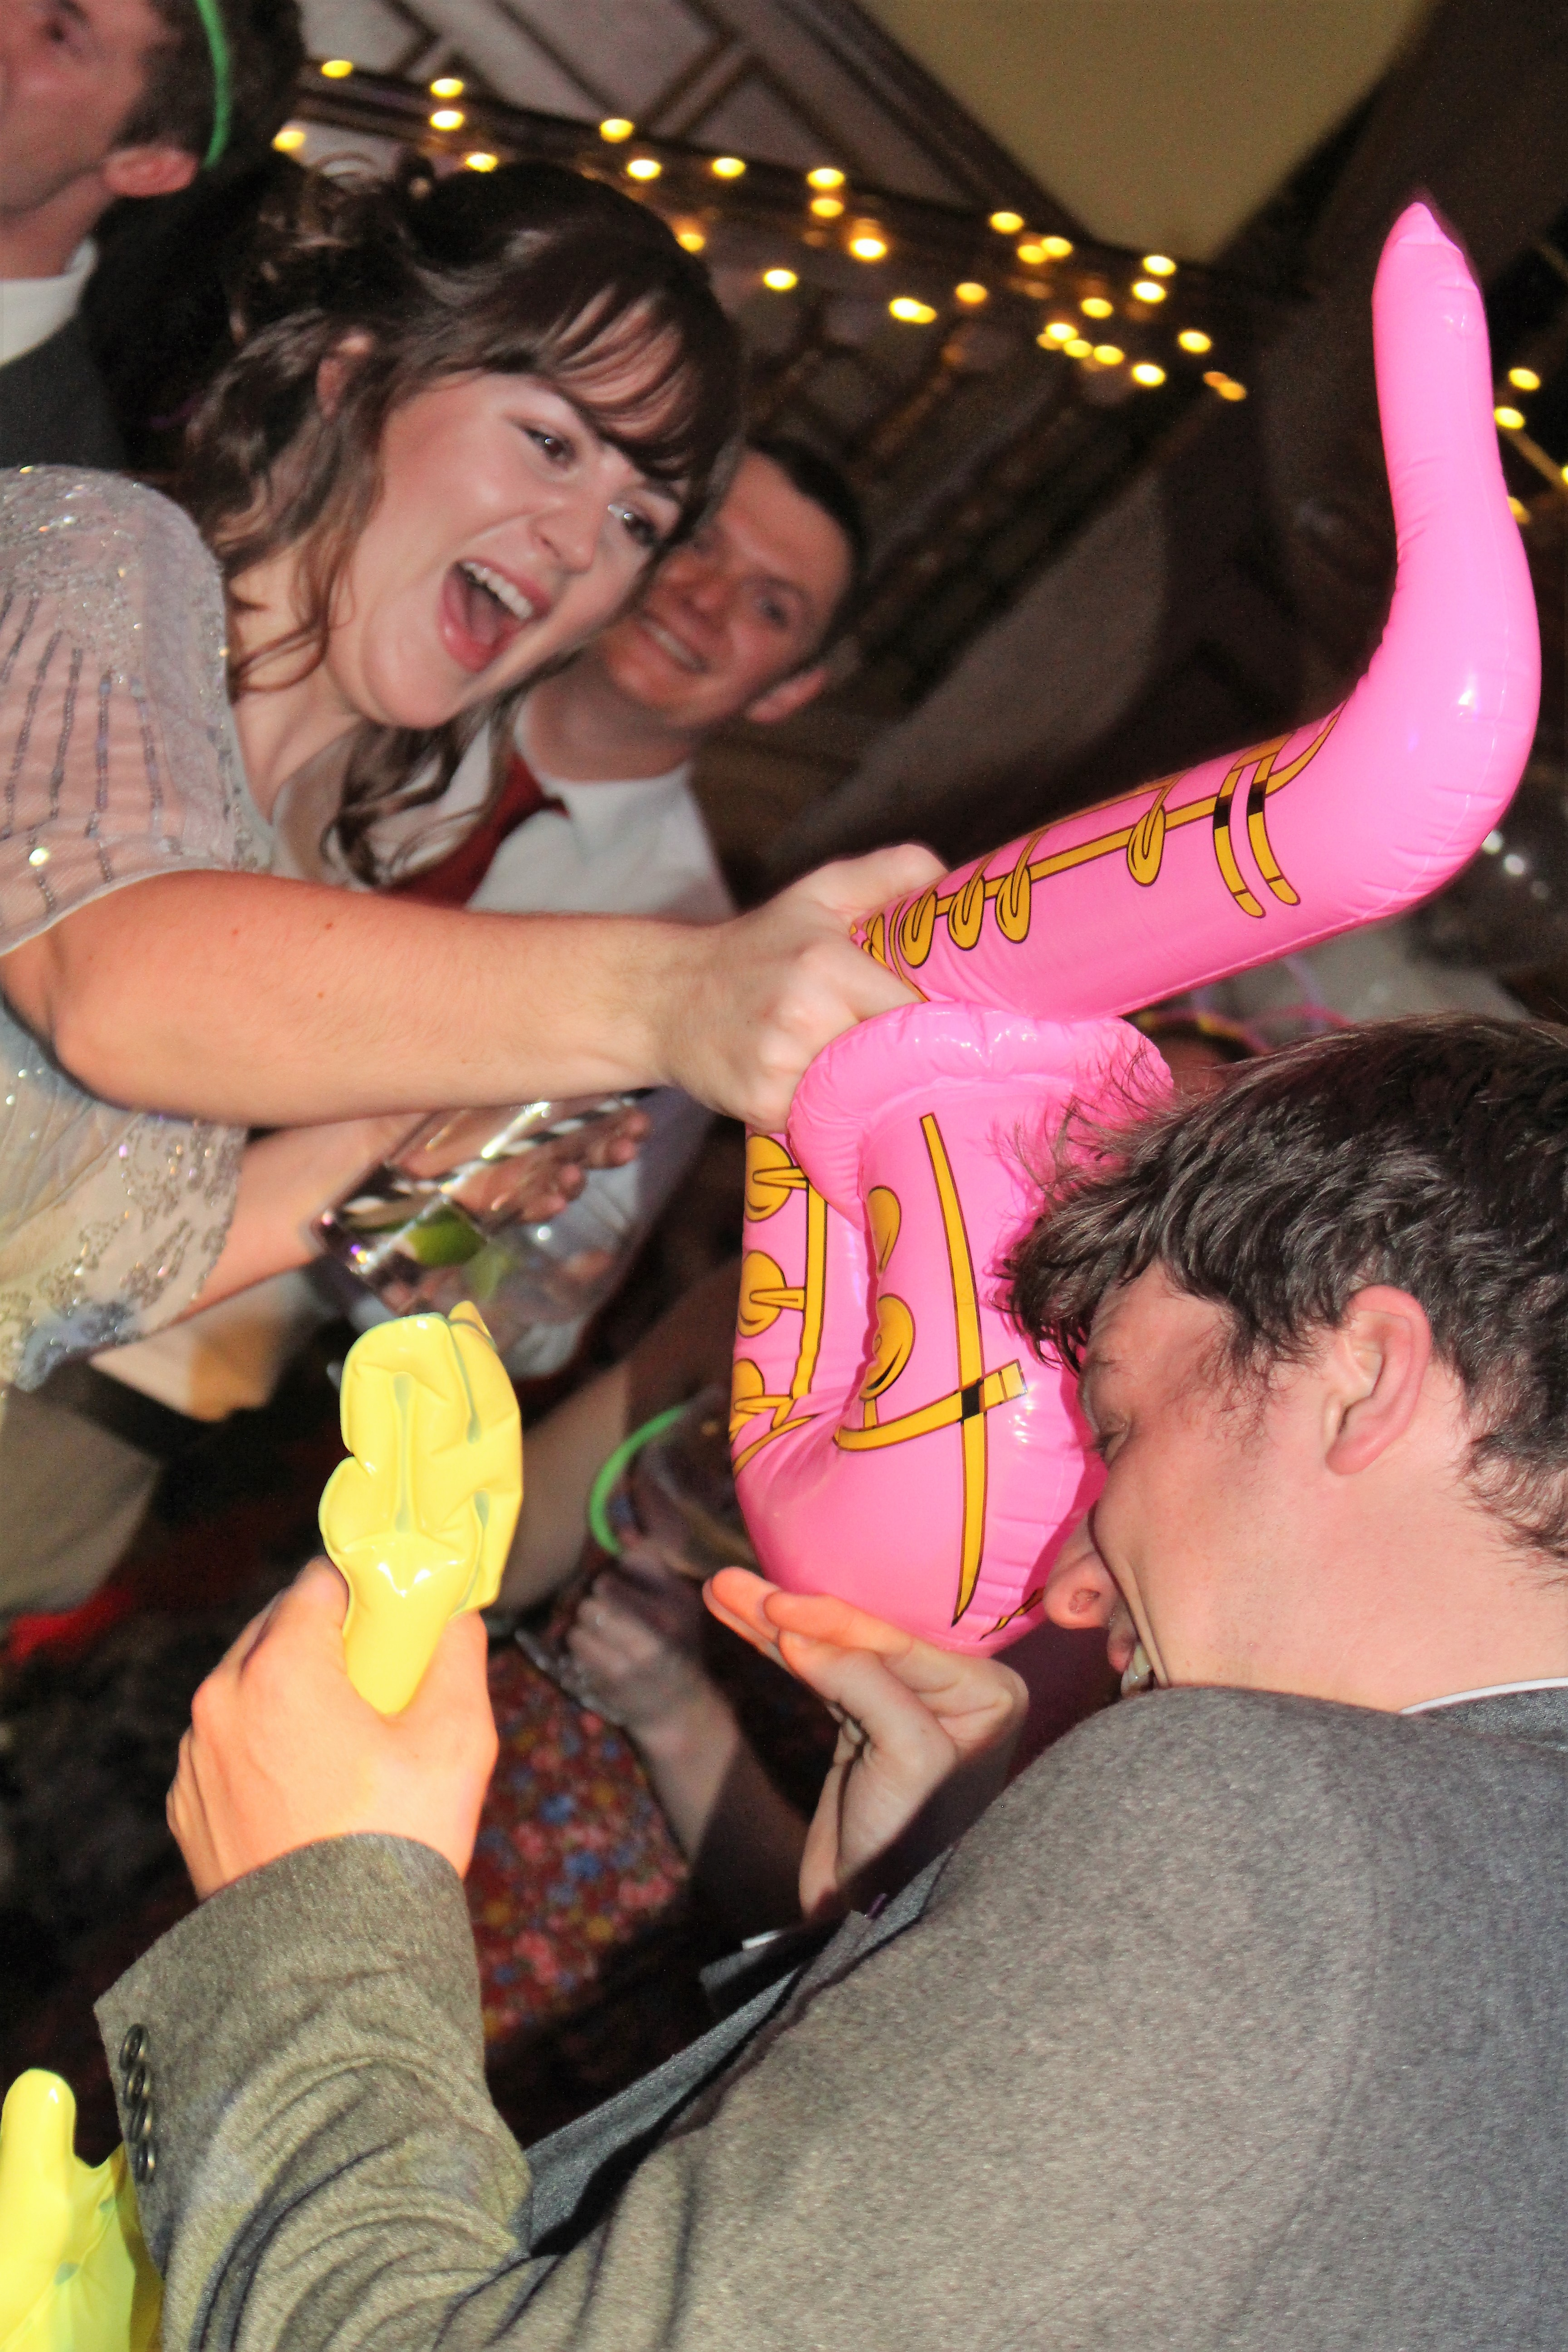 Getting Attacked with a Saxophone!